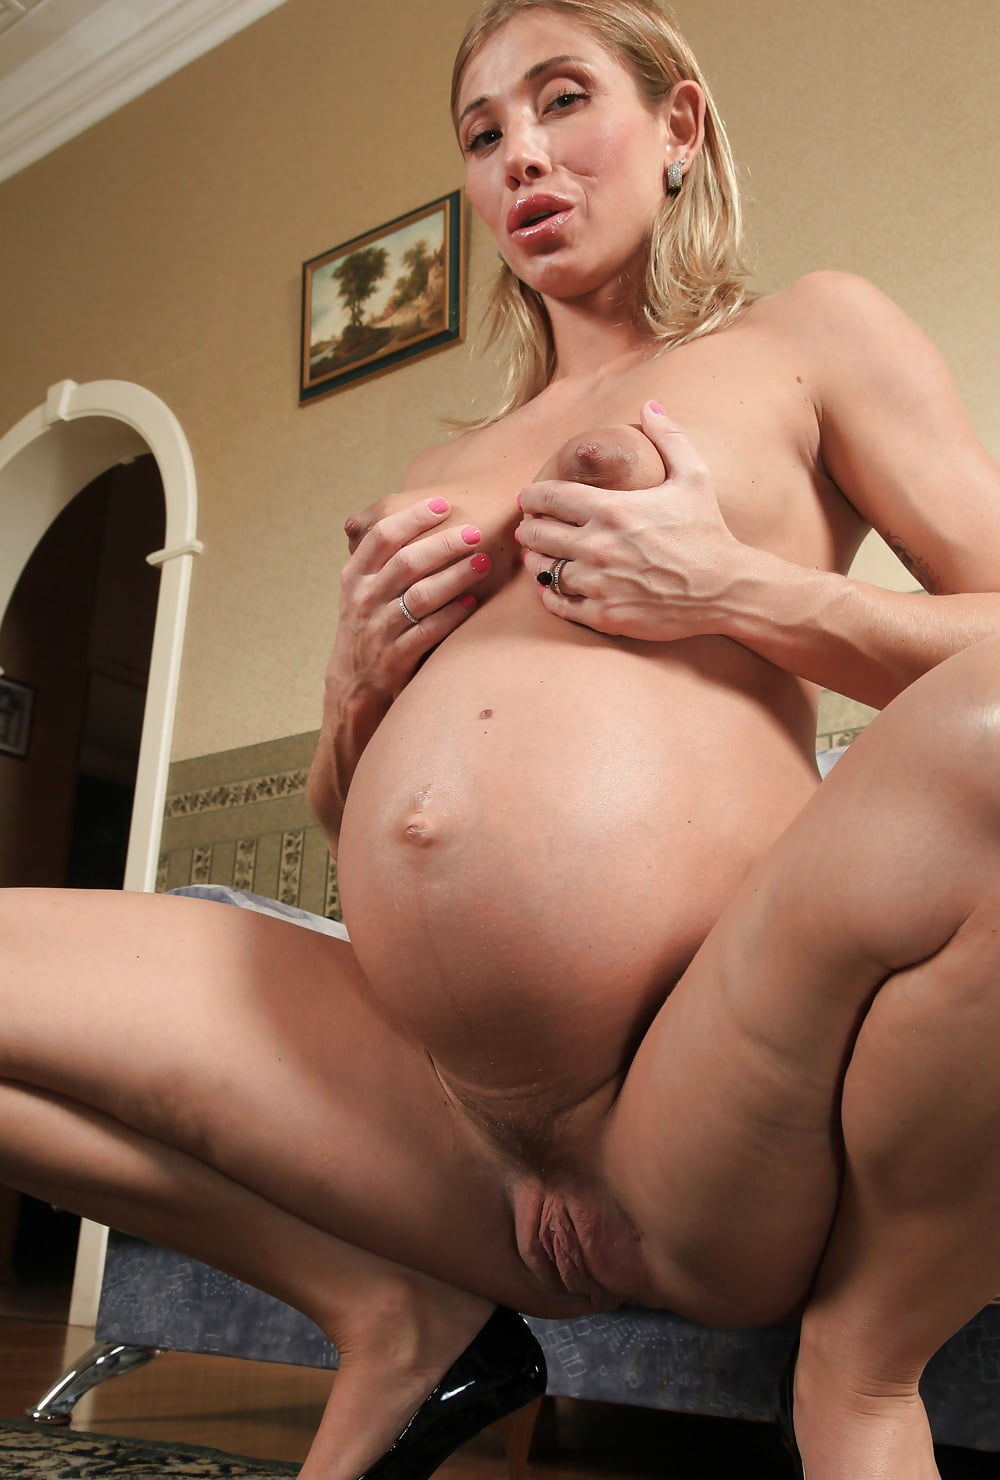 Moms that pregnant milf pussy eating pics sexy